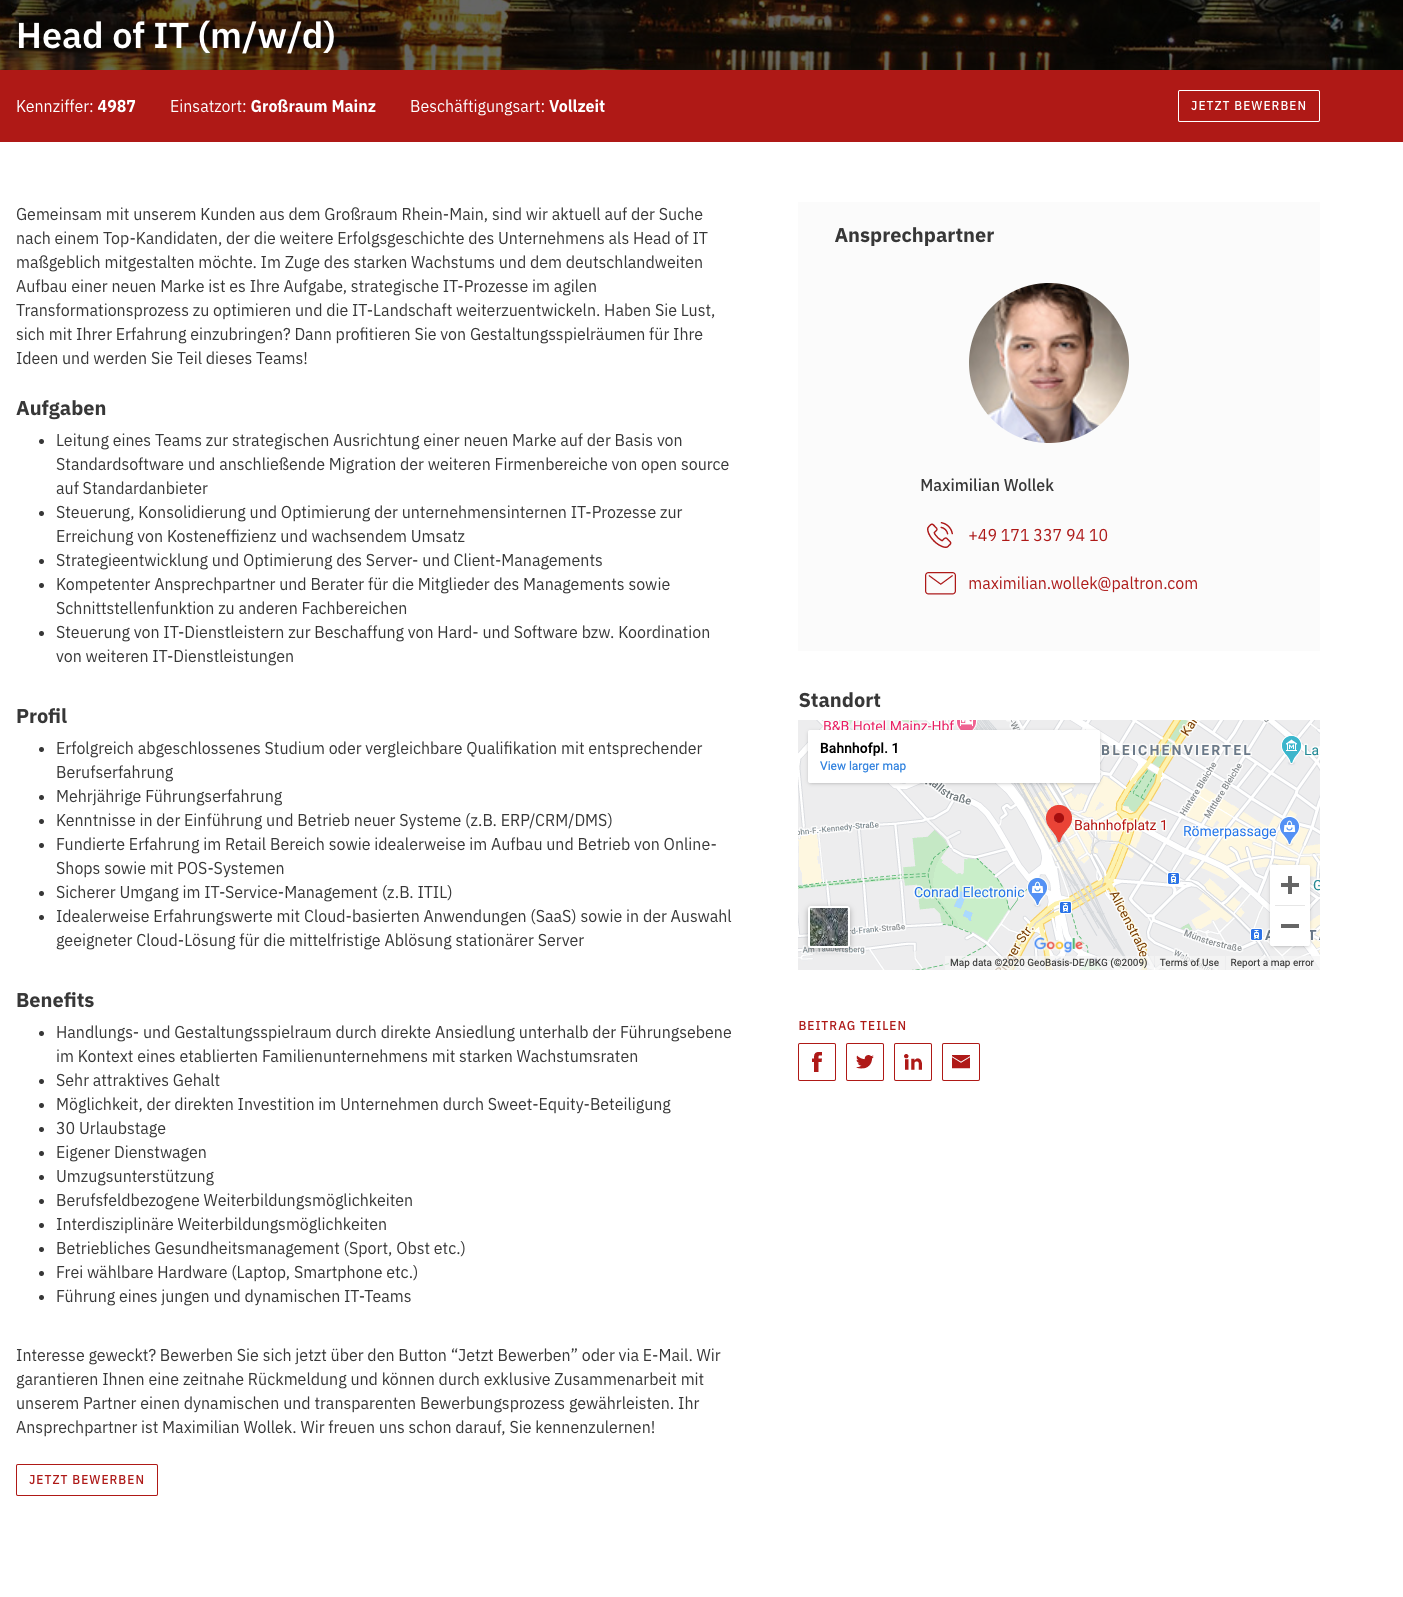 Example of a real job description on PALTRON's website